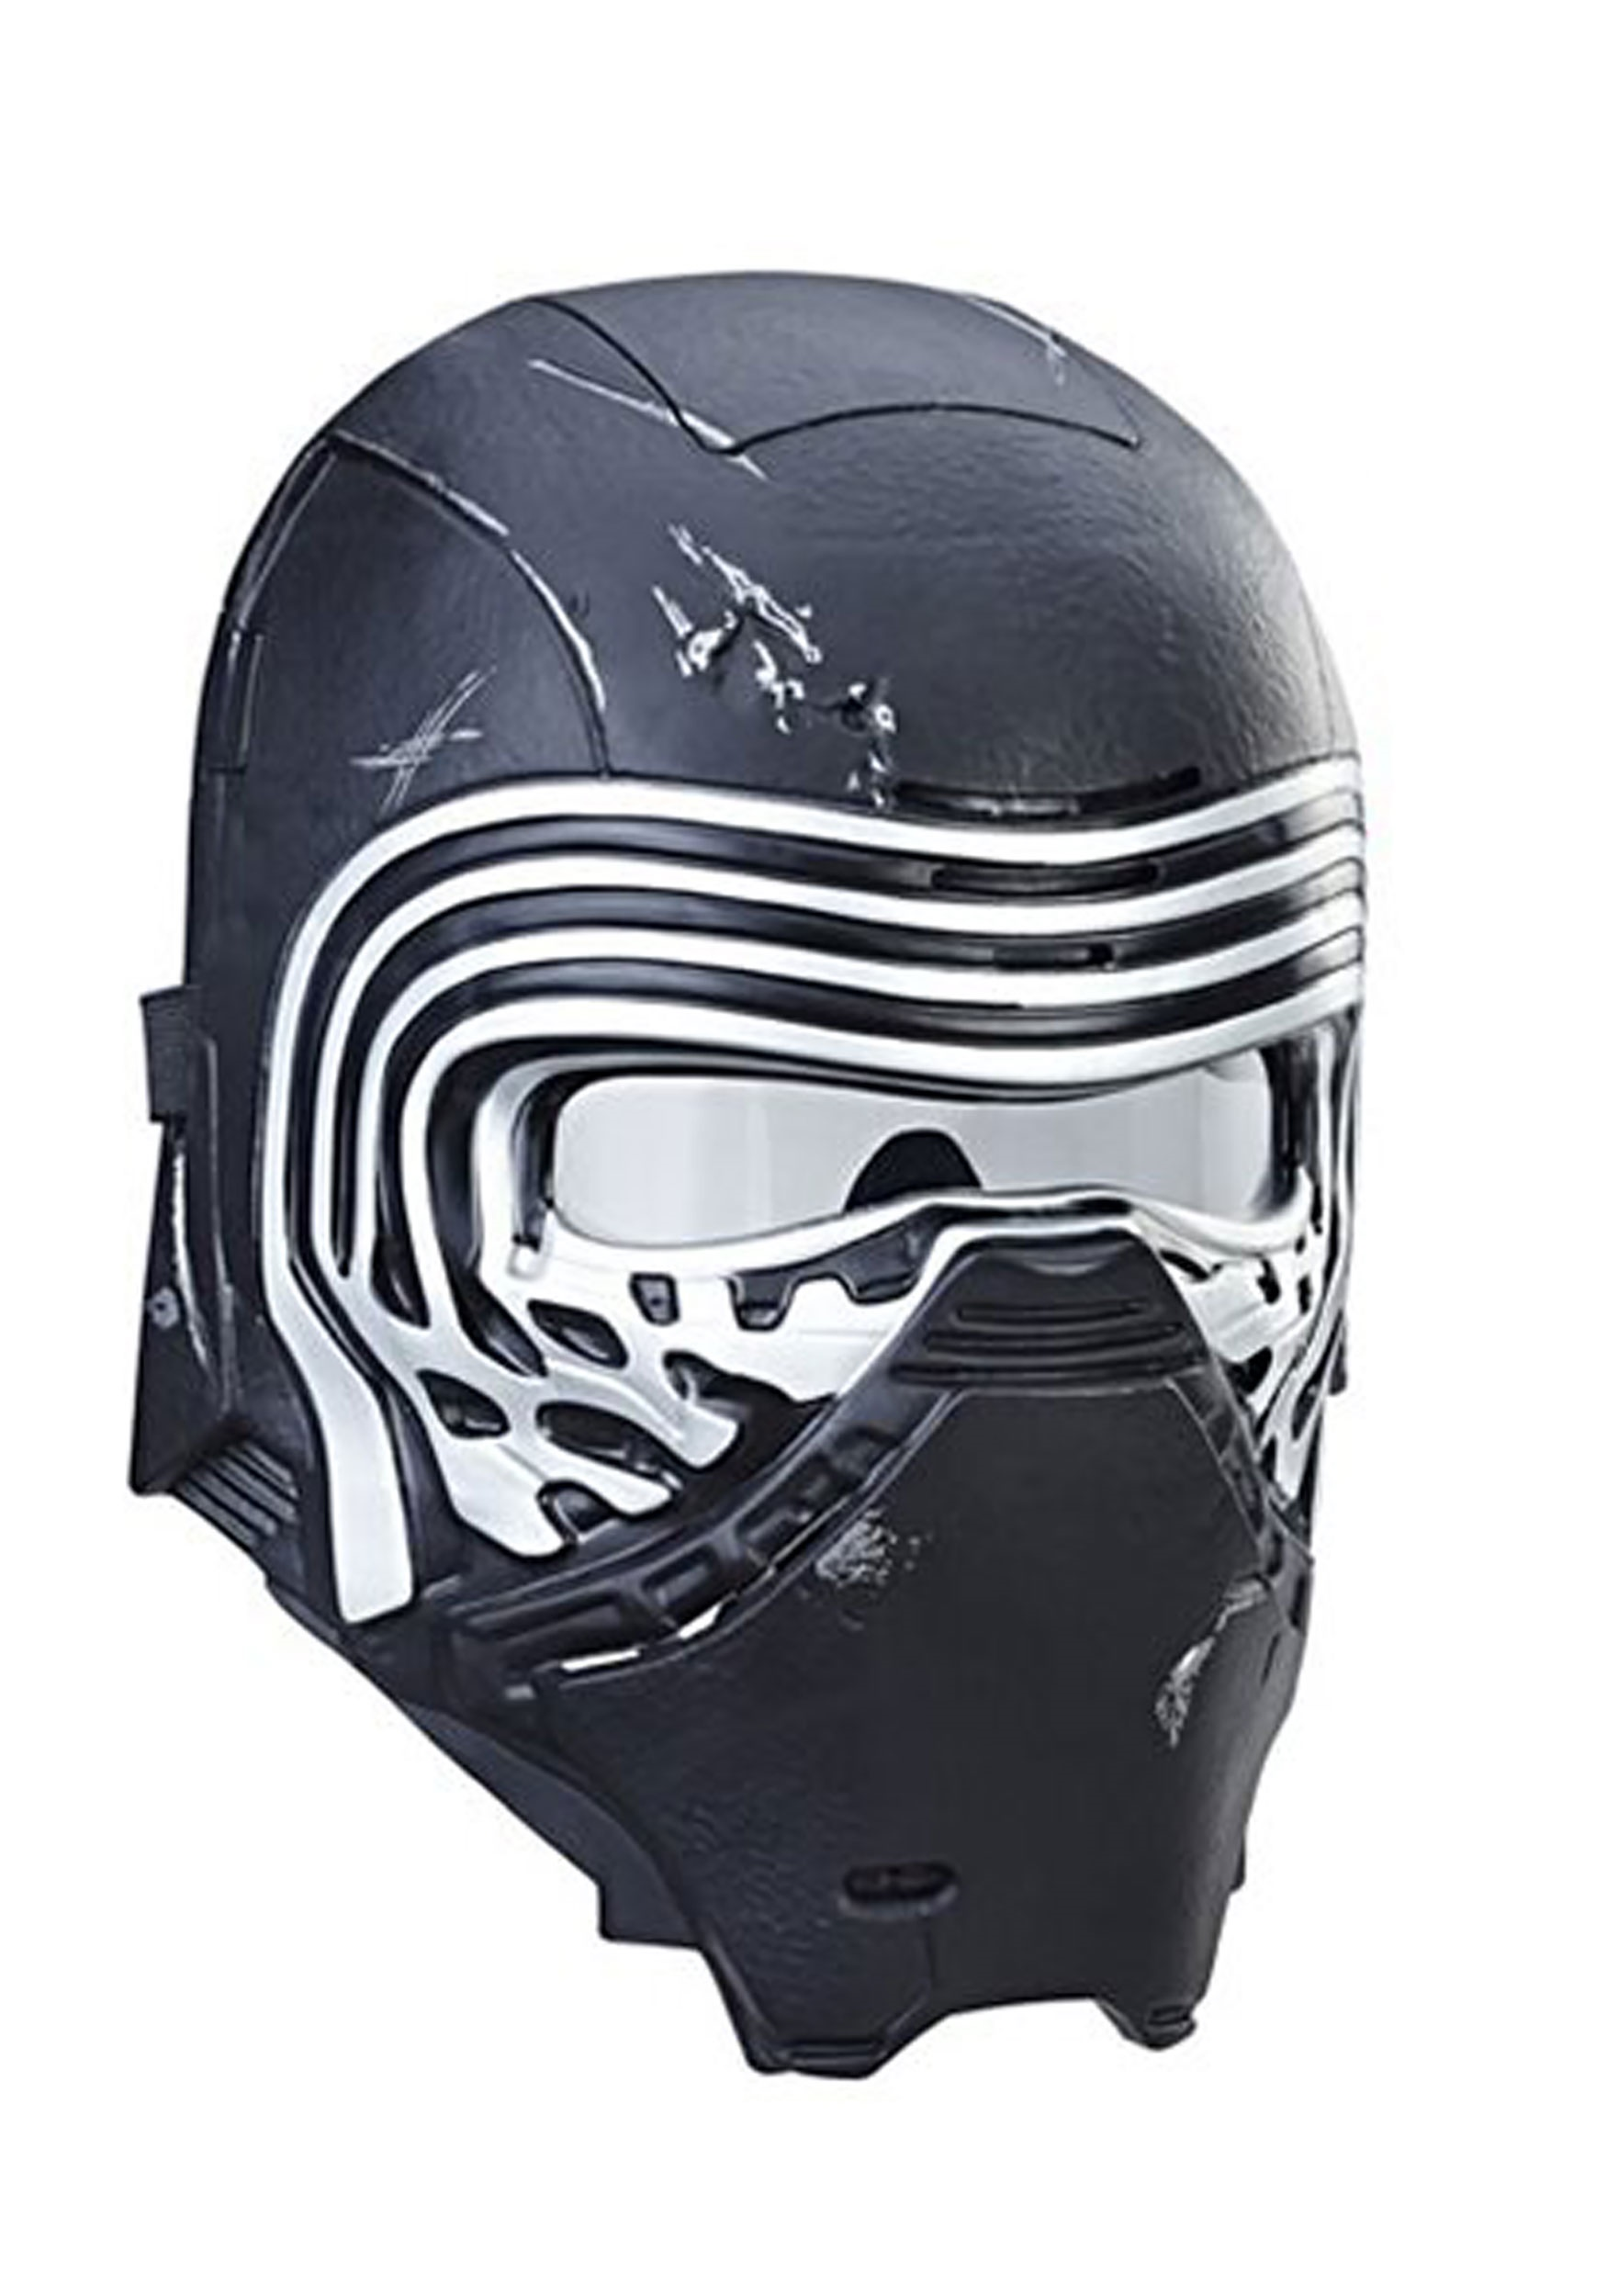 INOpets.com Anything for Pets Parents & Their Pets Star Wars: The Last Jedi Kylo Ren Electronic Mask